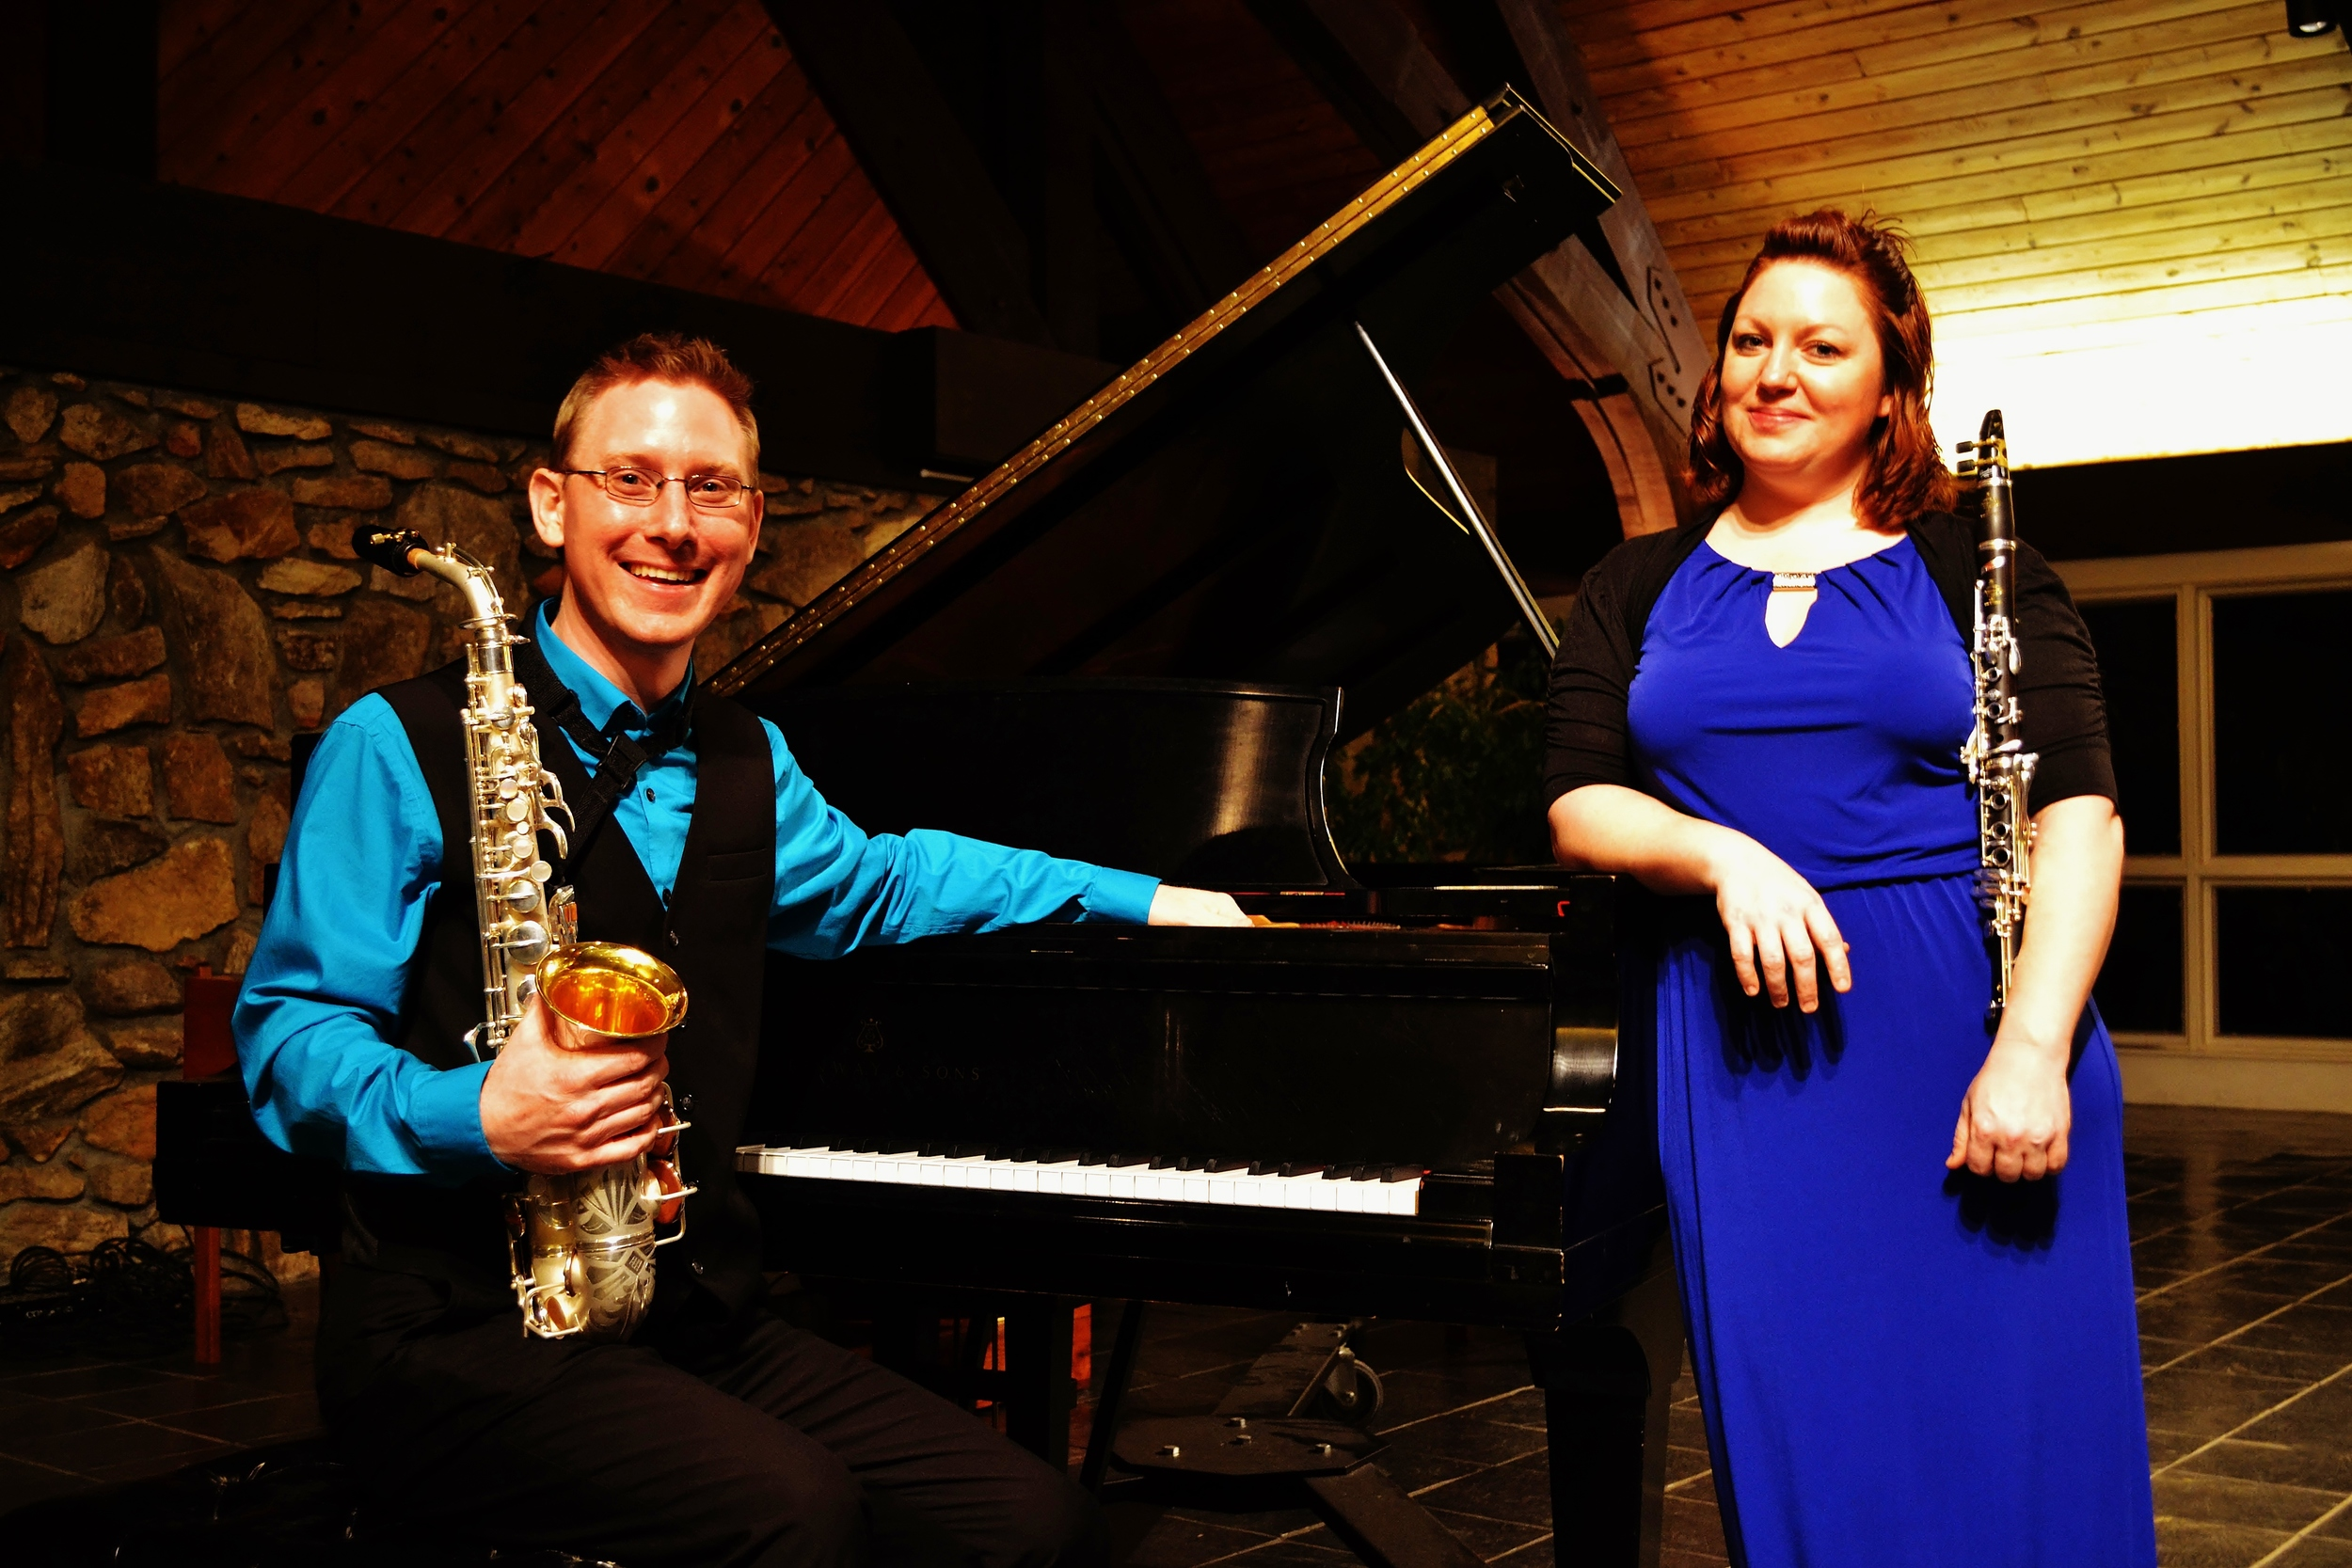 Performers Alan Theisen, alto saxophone and Lisa Kachouee, clarinet